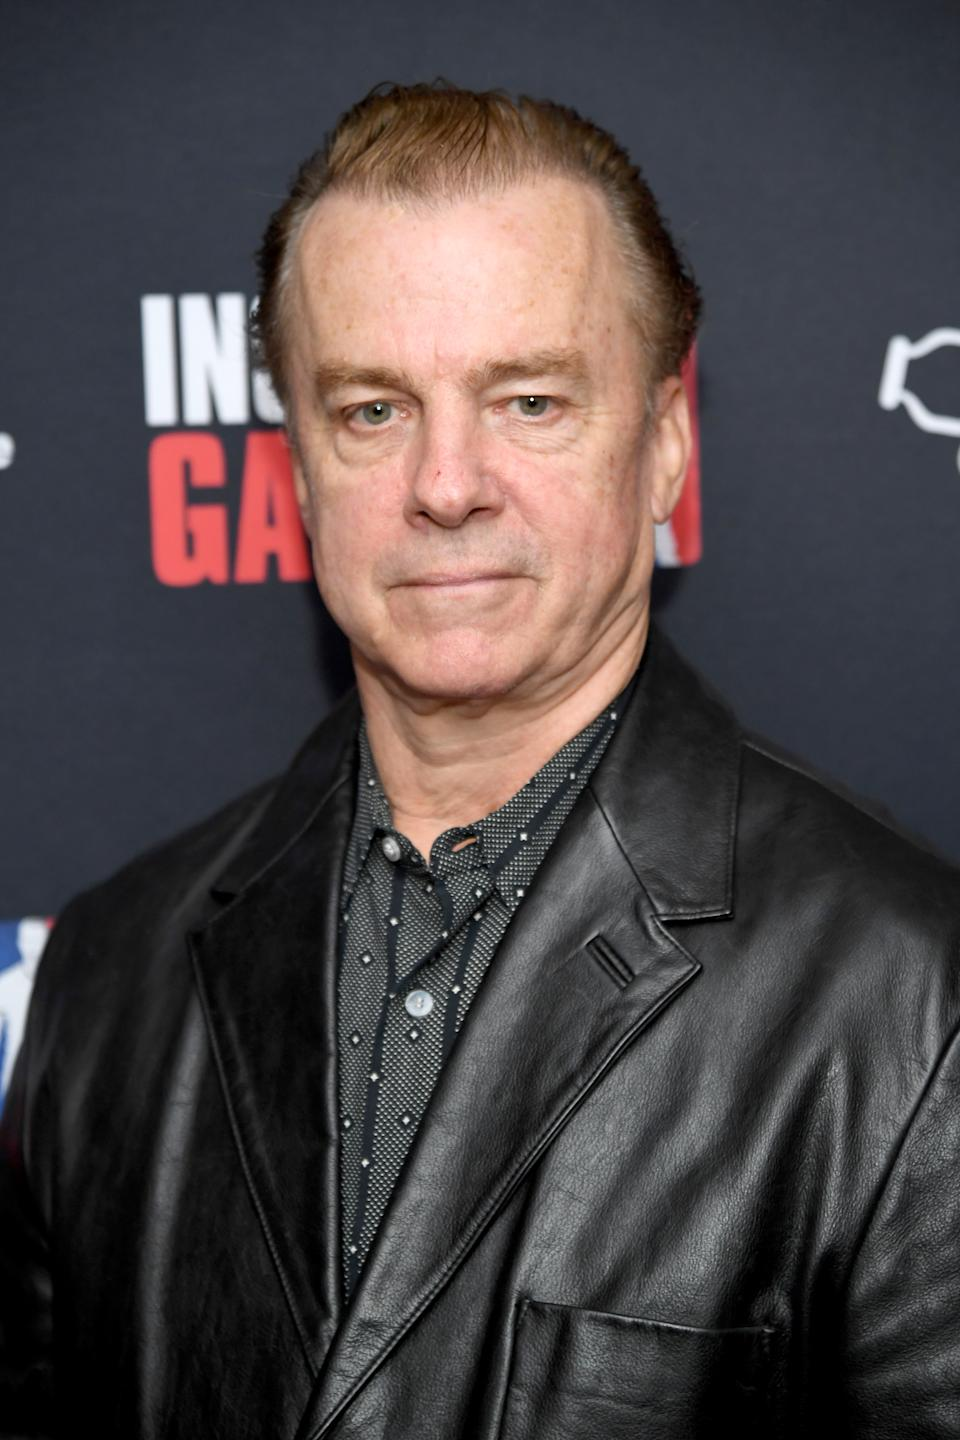 """NEW YORK, NEW YORK - OCTOBER 30:  Michael O'Keefe attends the New York premiere of """"Inside Game"""" at Metrograph on October 30, 2019 in New York City. (Photo by Dimitrios Kambouris/Getty Images)"""